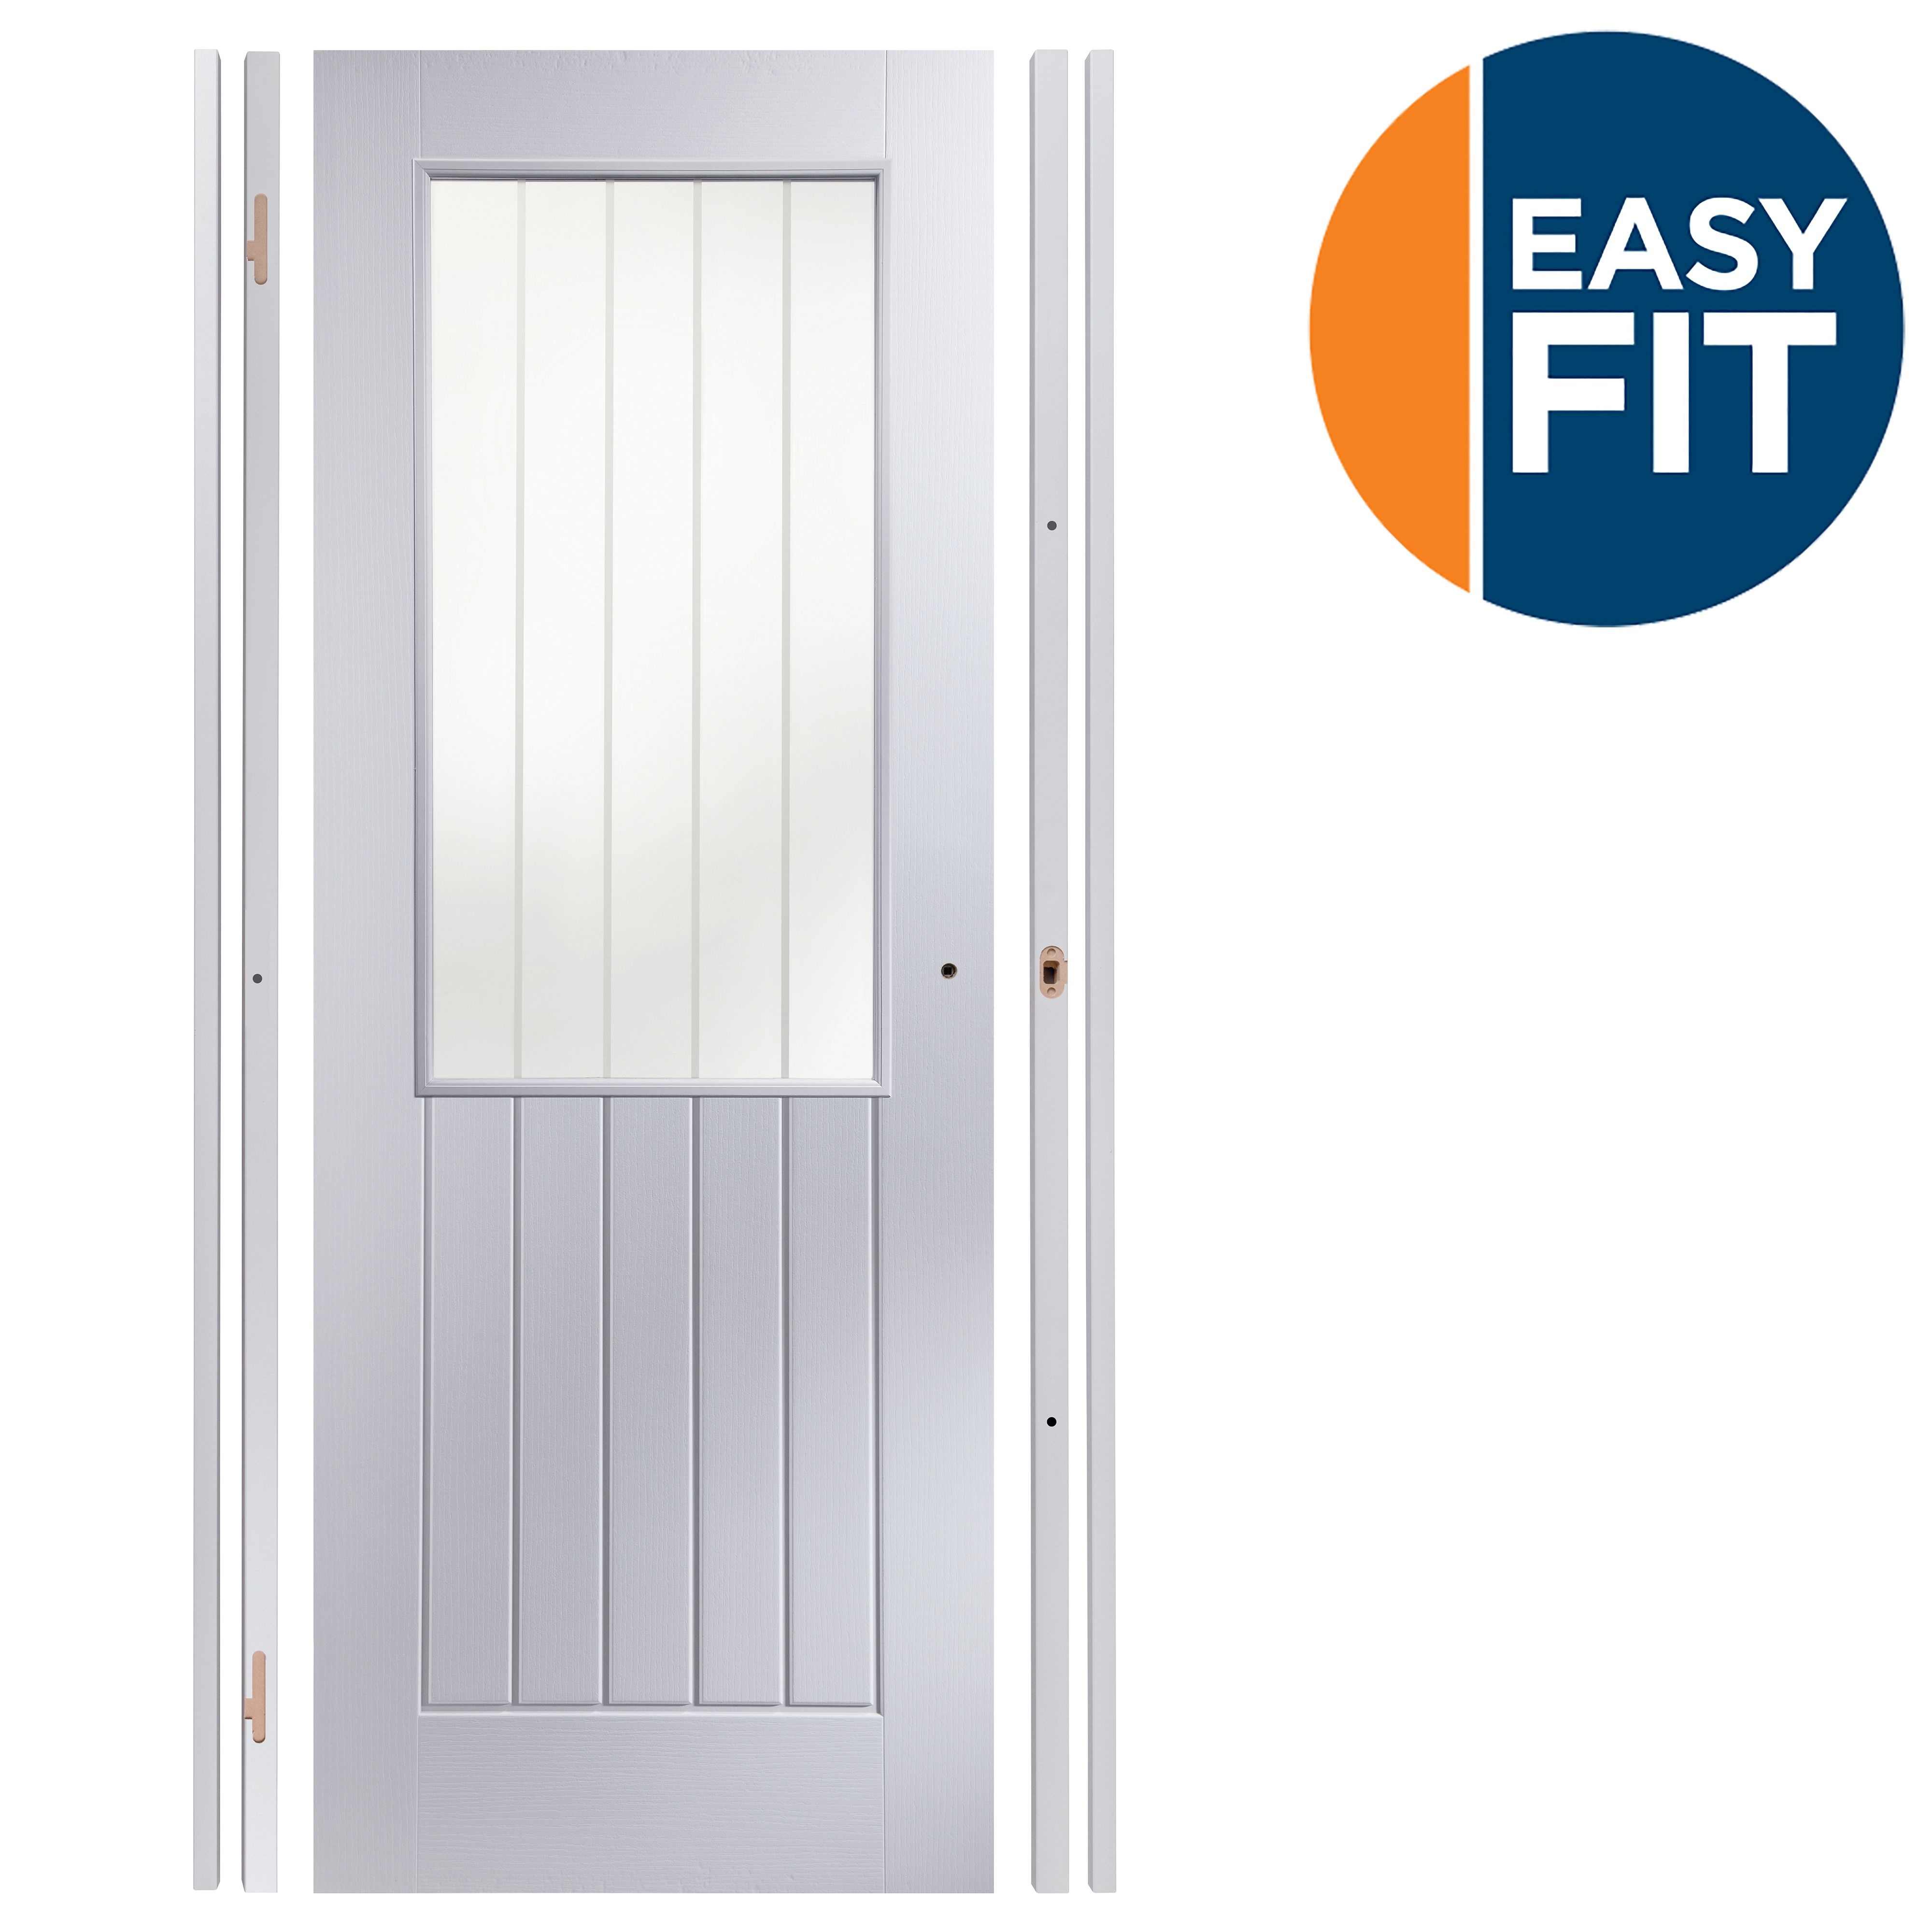 Easy Fit Panelled Pre-painted Glazed Internal Door Kit, For Opening Sizes (w)759-771mm (h)1988-1996mm (d)35mm